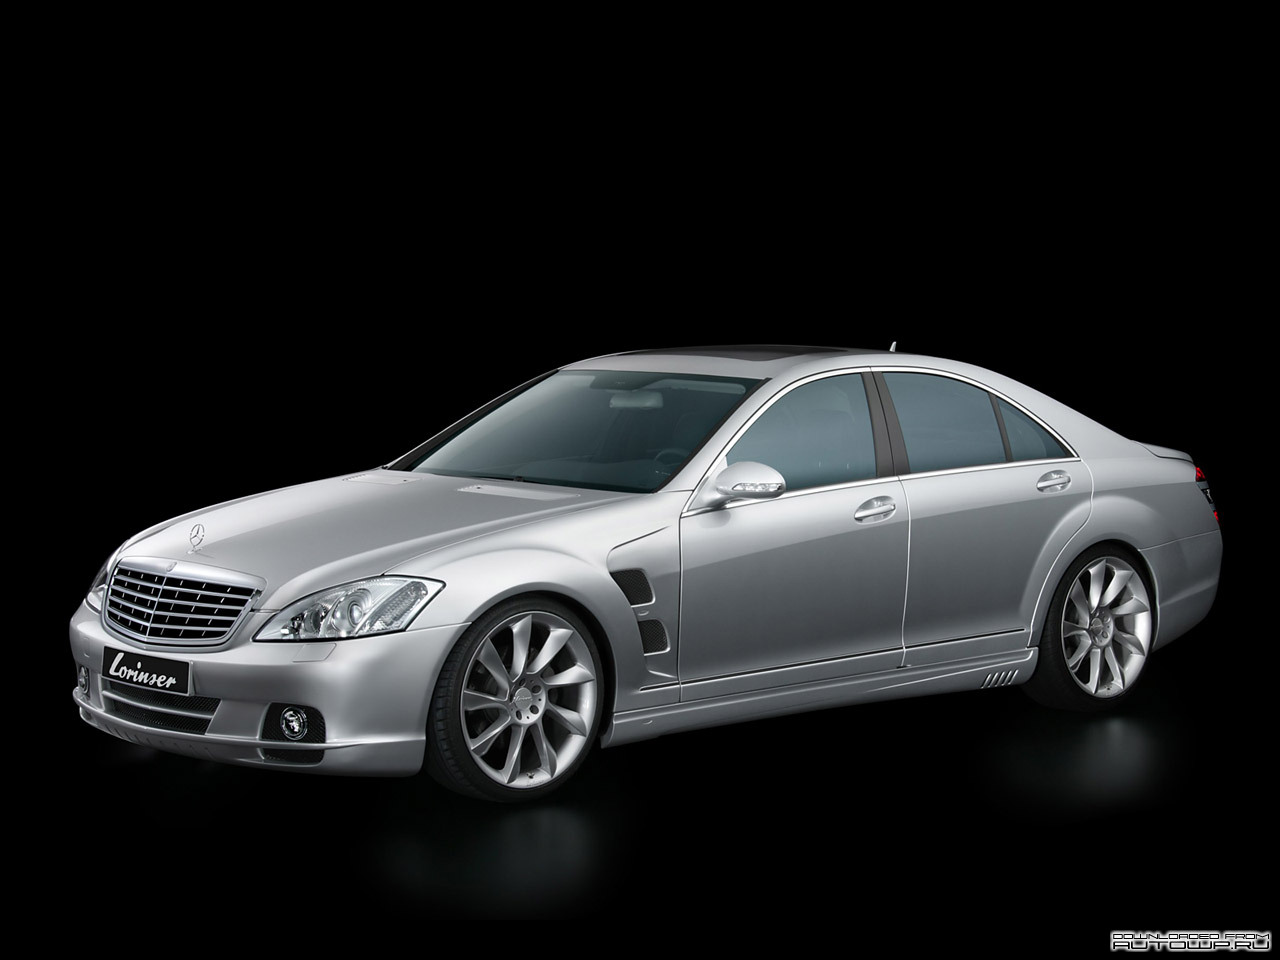 Lorinser Mercedes S photos - PhotoGallery with 9 pics| CarsBase.com